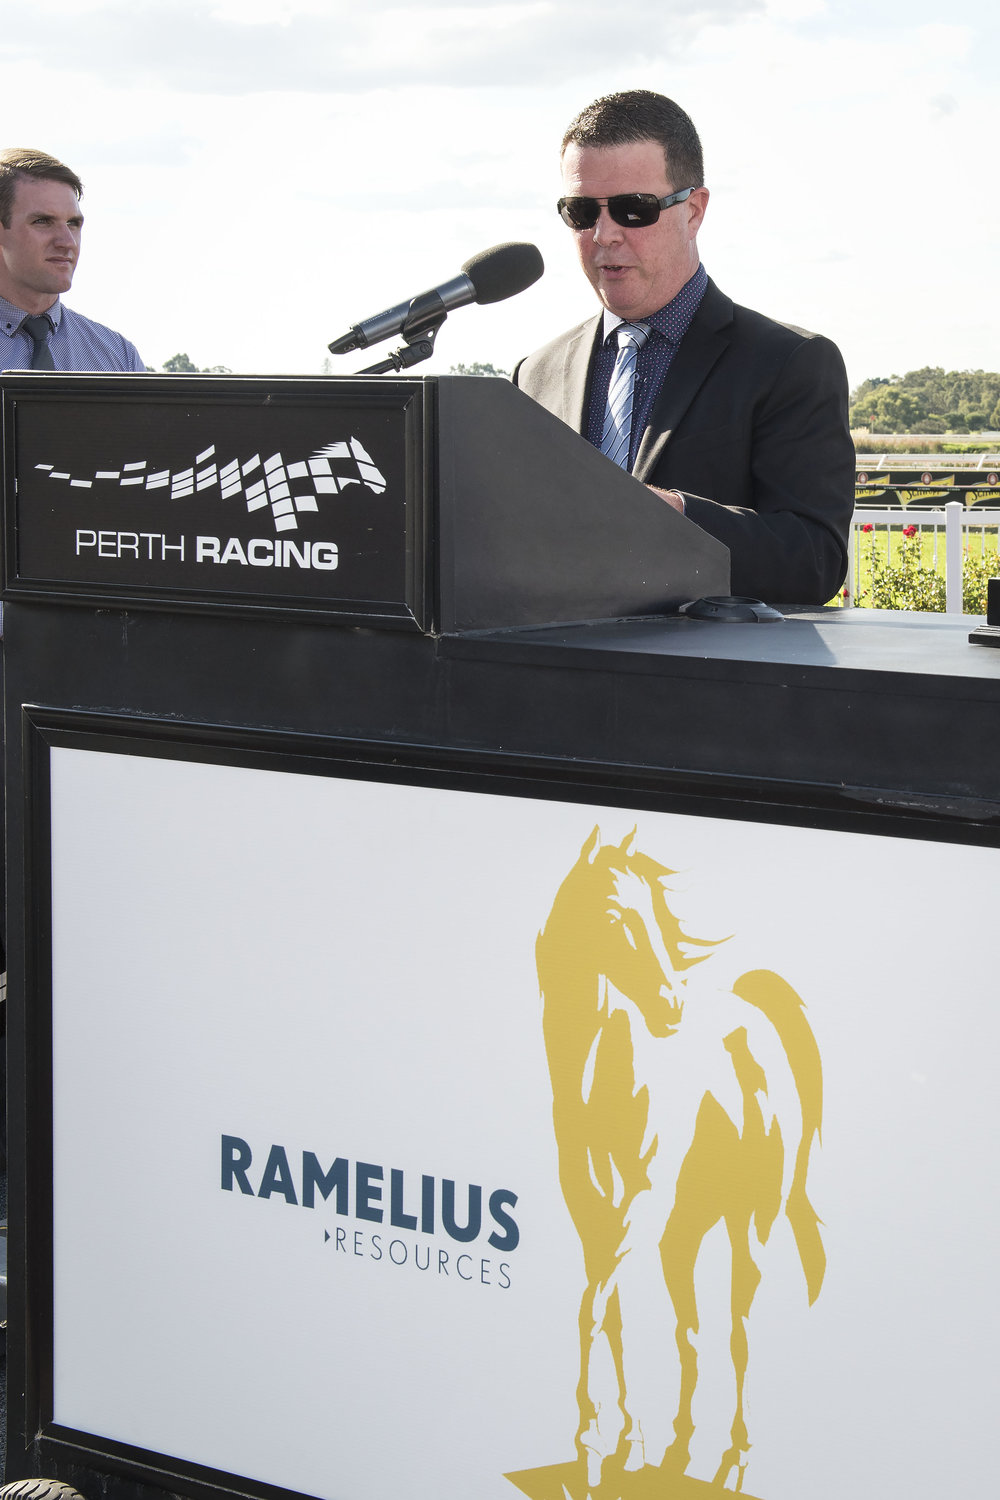 Ramelius Resources Managing Director Mark Zeptner presenting after the Ramelius race